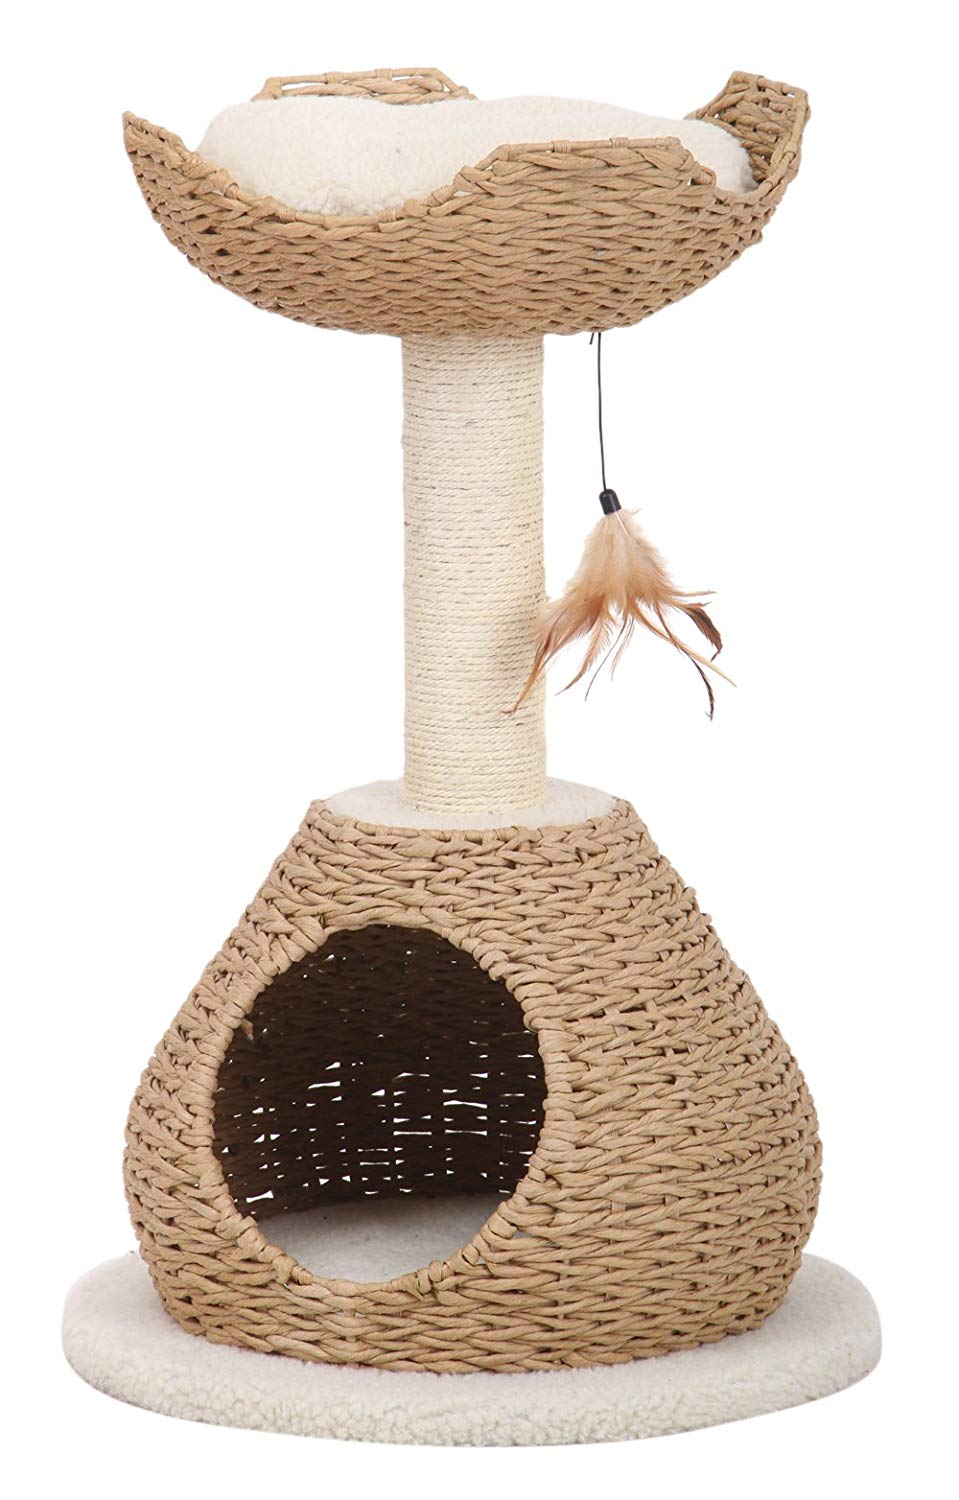 Best Cat Tree For Small Apartment Dwellers Cool Cat Tree Plans